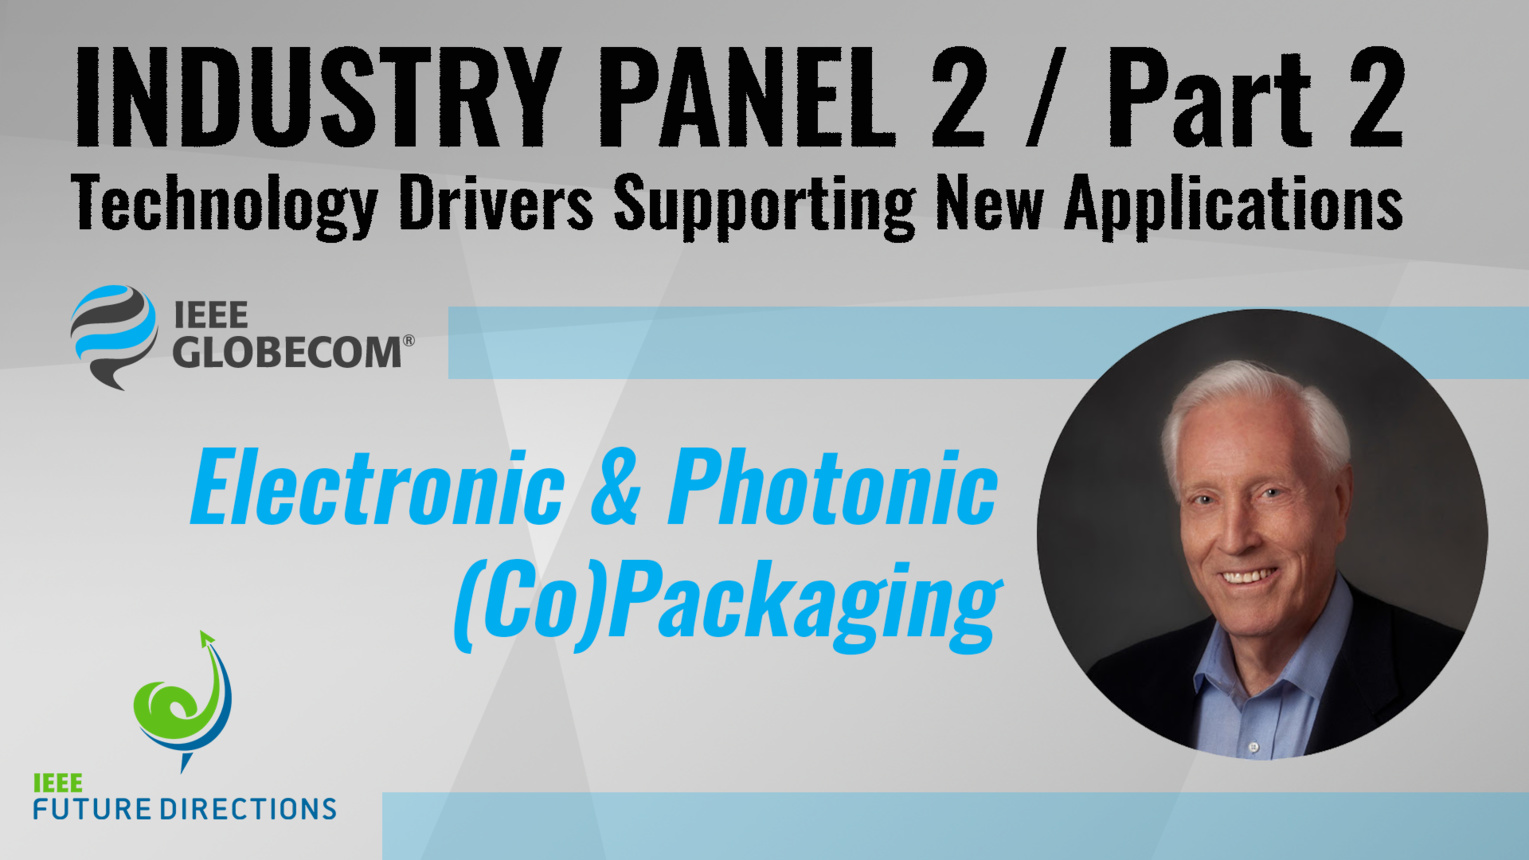 Pt. 2: Electronic & Photonic (Co)Packaging Technologies - Bill Bottoms - Industry Panel 2, IEEE Globecom, 2019